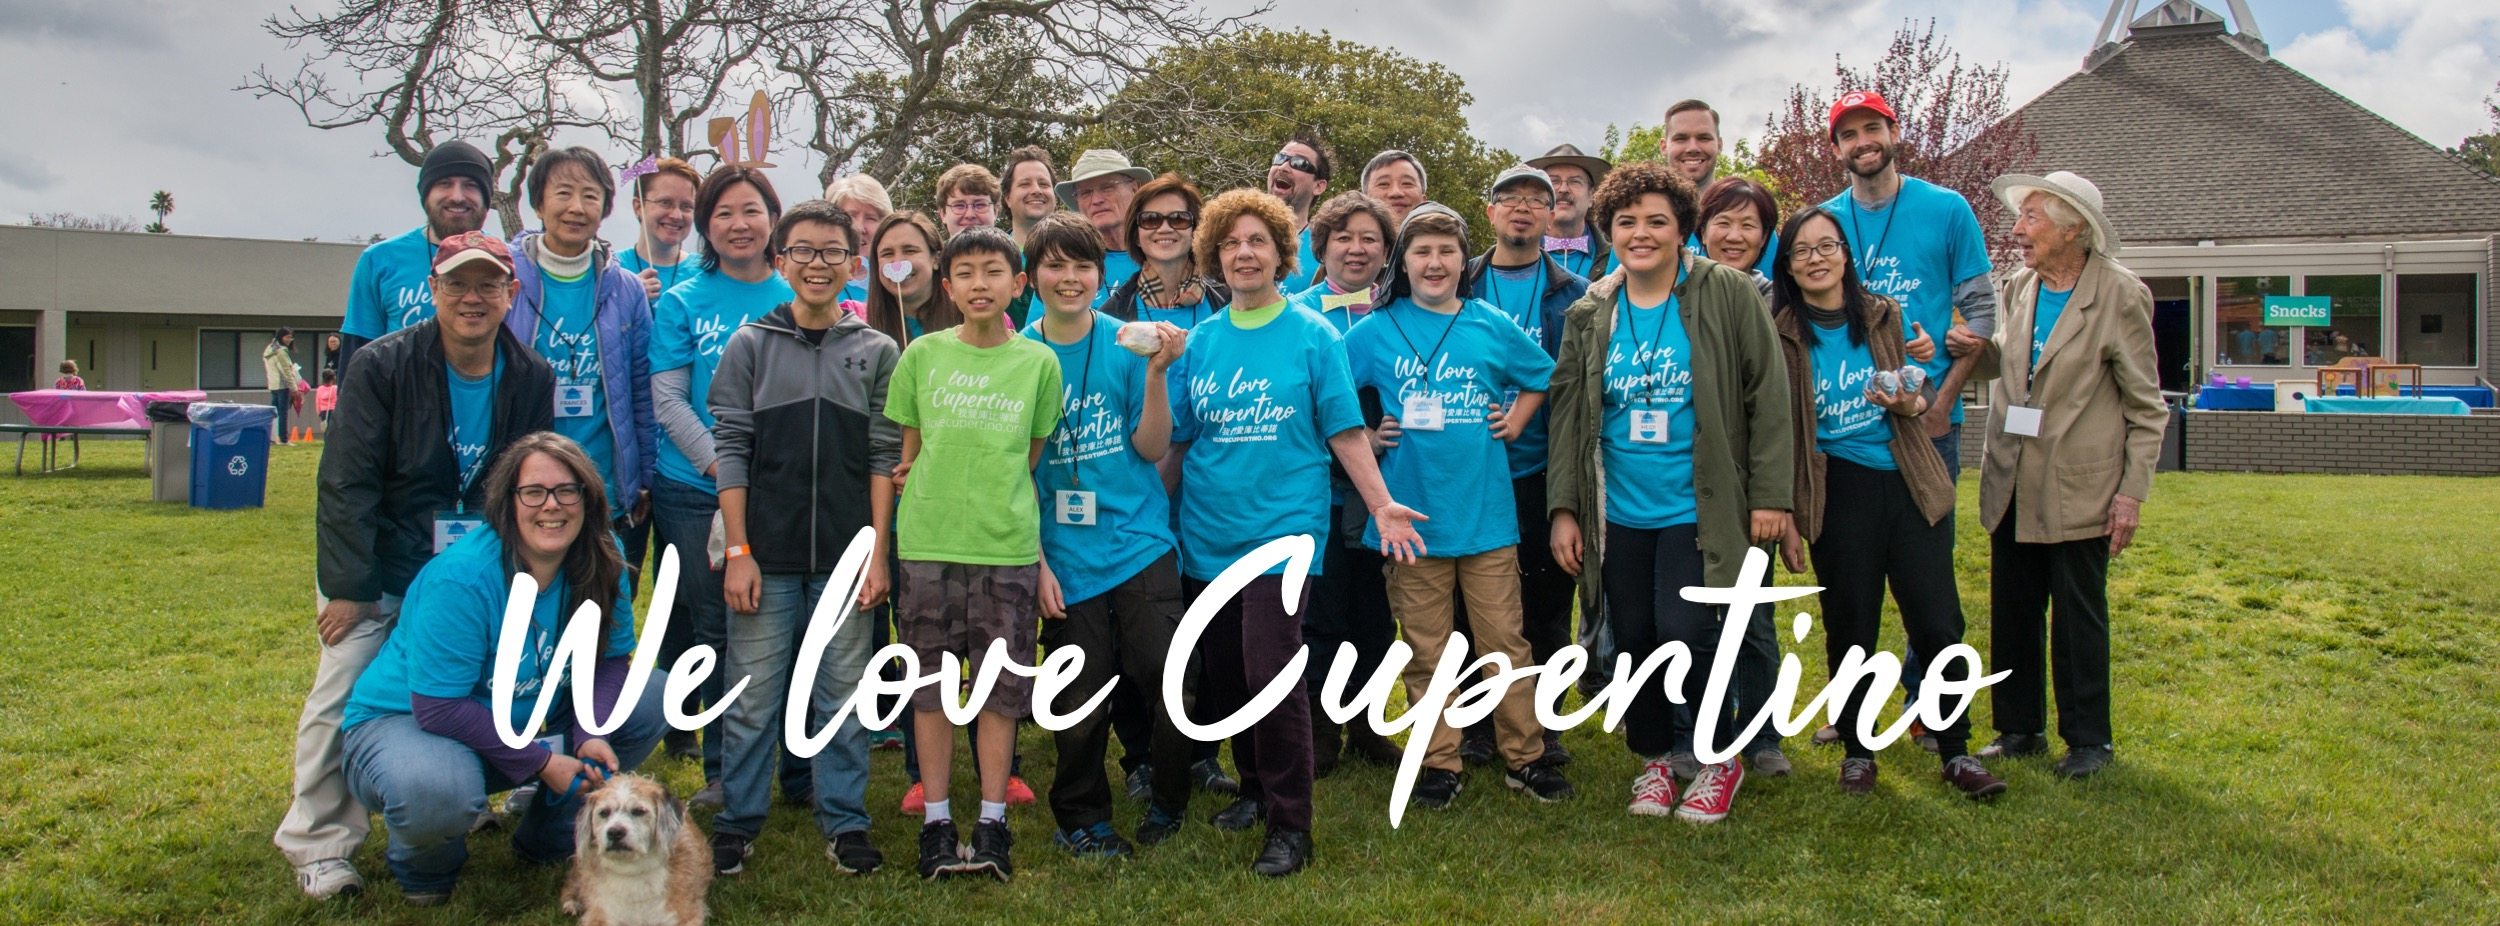 We love Cupertino - Volunteers